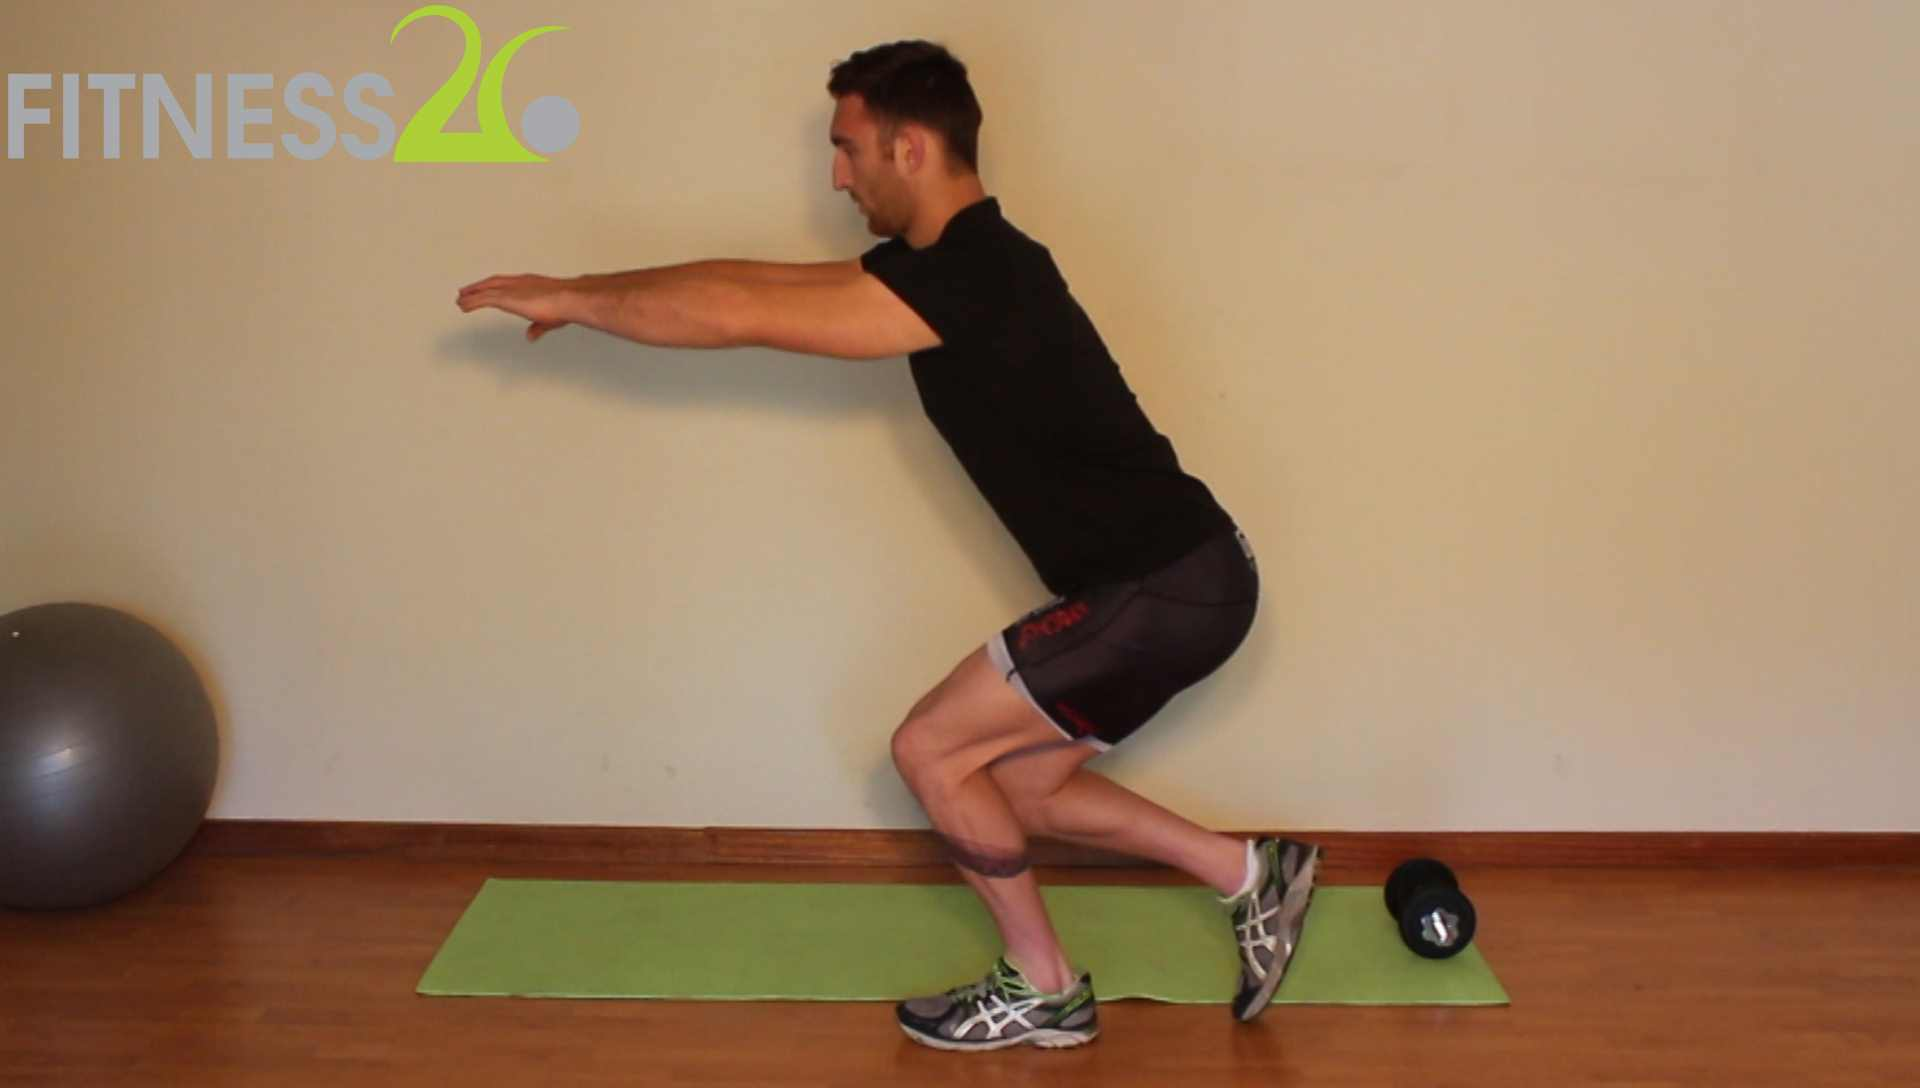 Josh – Full Body Routine : Beginners to Advanced